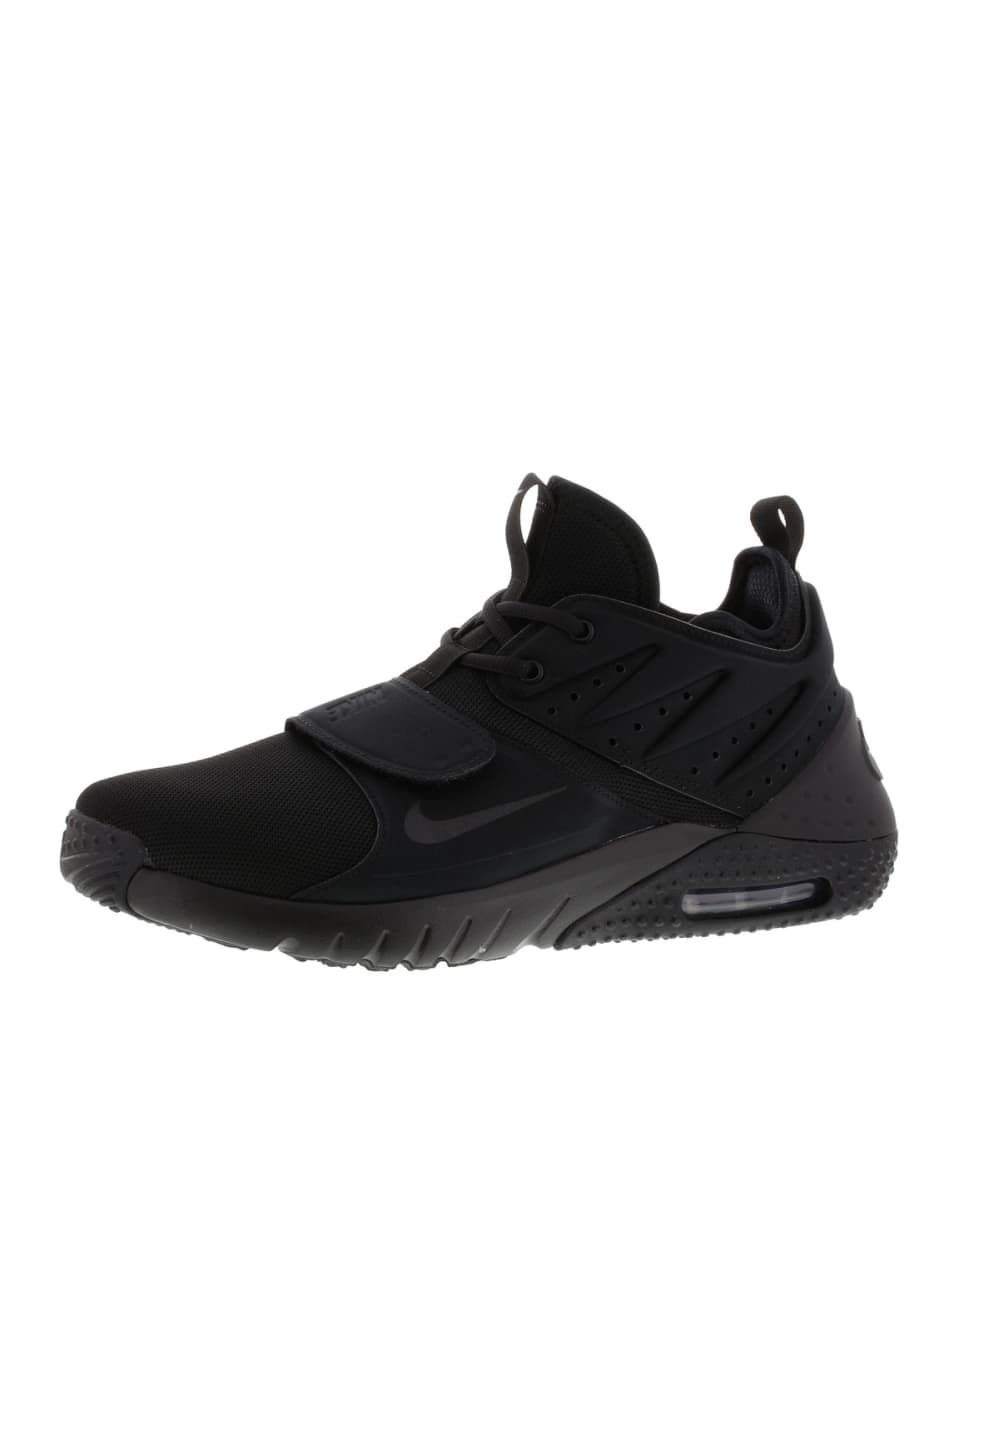 Fitness Air Max Noir Chaussures Trainer Nike 1 Homme Pour uJKTlF13c